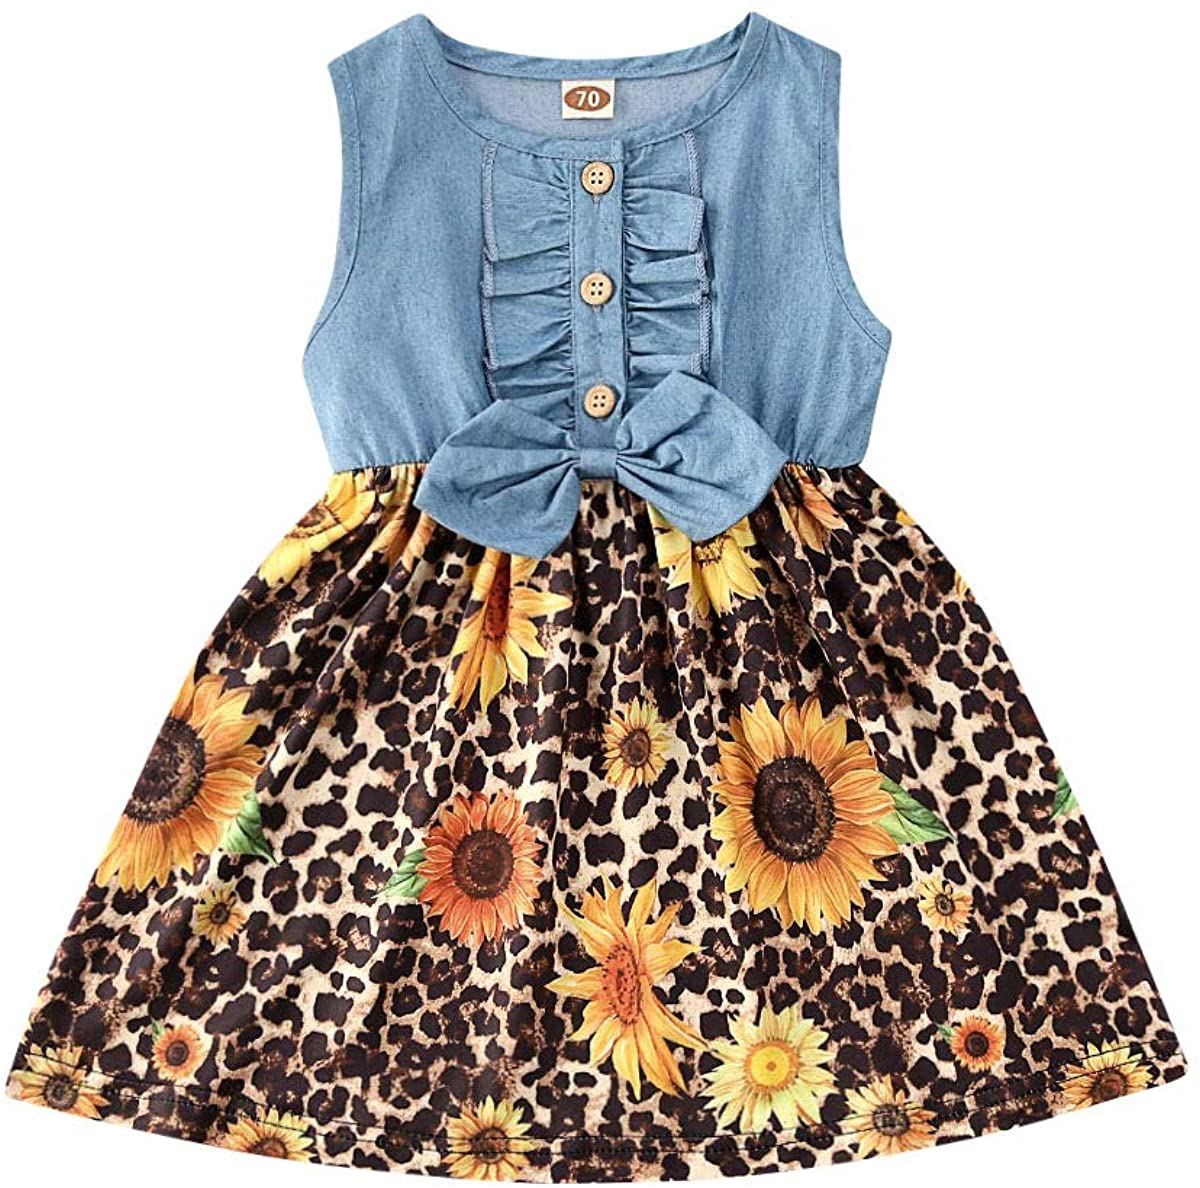 Ambabe Toddler Baby Girl Clothes Denim Sleeveless Button Down Stitching Leopard Sunflower Print Tutu Dress Sundress Outfit